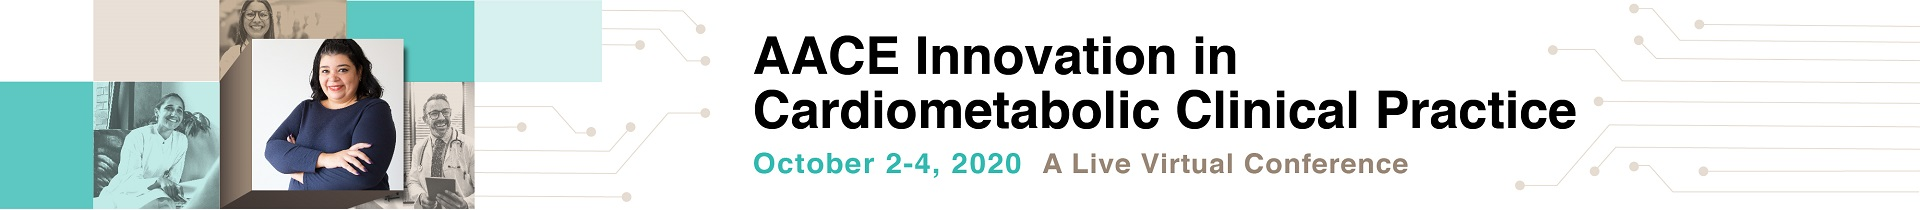 AACE Innovation in Cardiometabolic Clinical Practice Event Banner